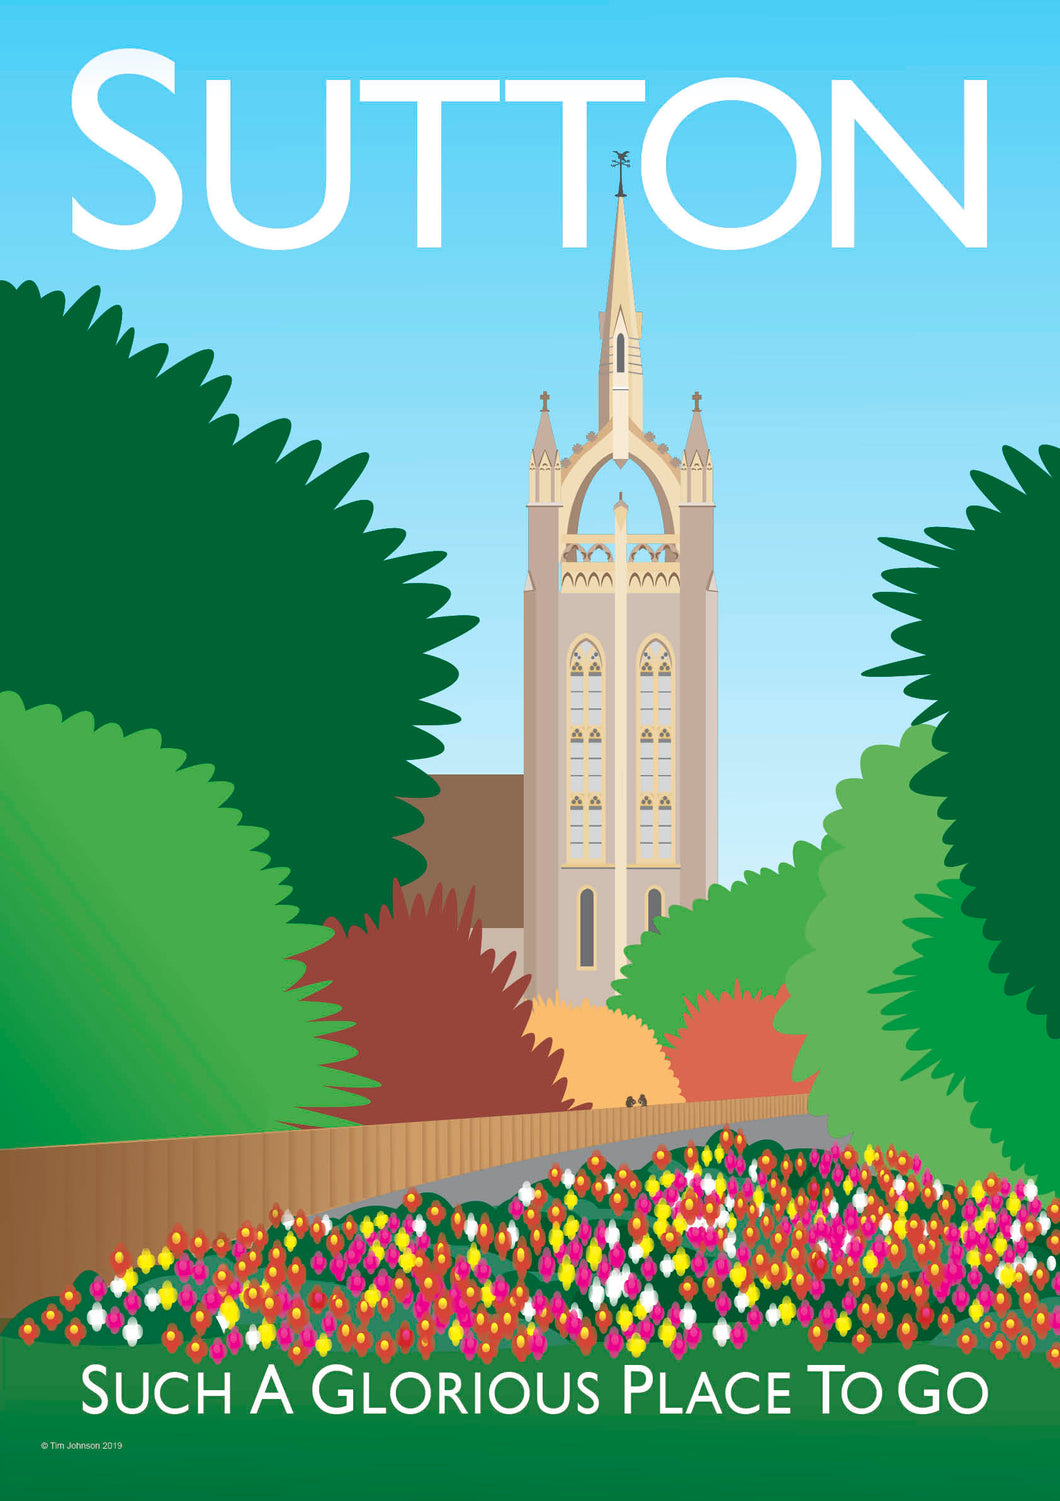 A vintage style poster of Sutton in London. Featuring the iconic village church.   Vintage style posters lovingly designed by Tim Johnson.  Available in A4 and A3. Unmounted and unframed high quality print. Shipped within UK via courier. Mounting and framing options available, please get in touch!